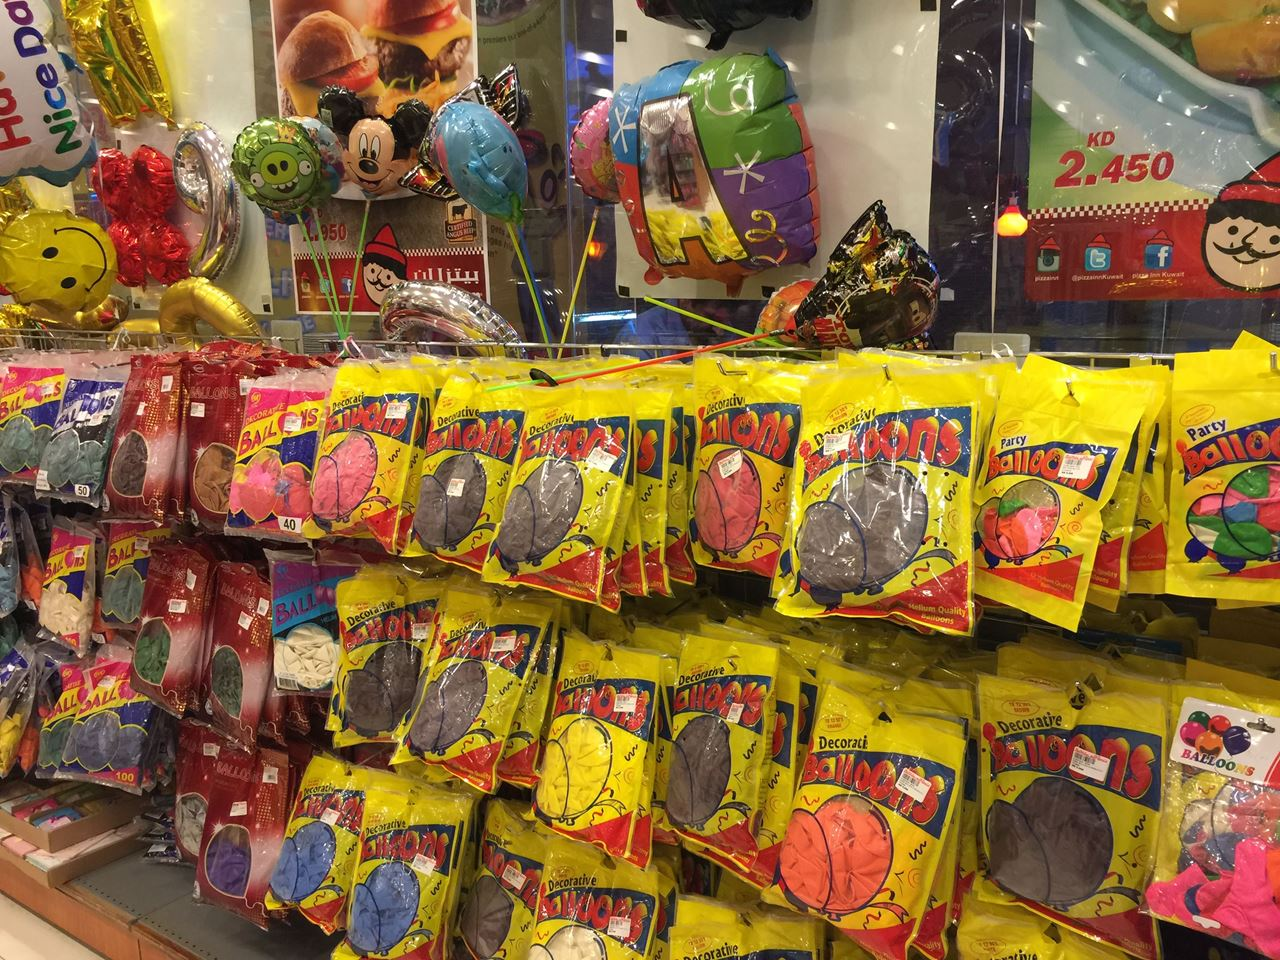 Birthday Decorations and Accessories in True Value